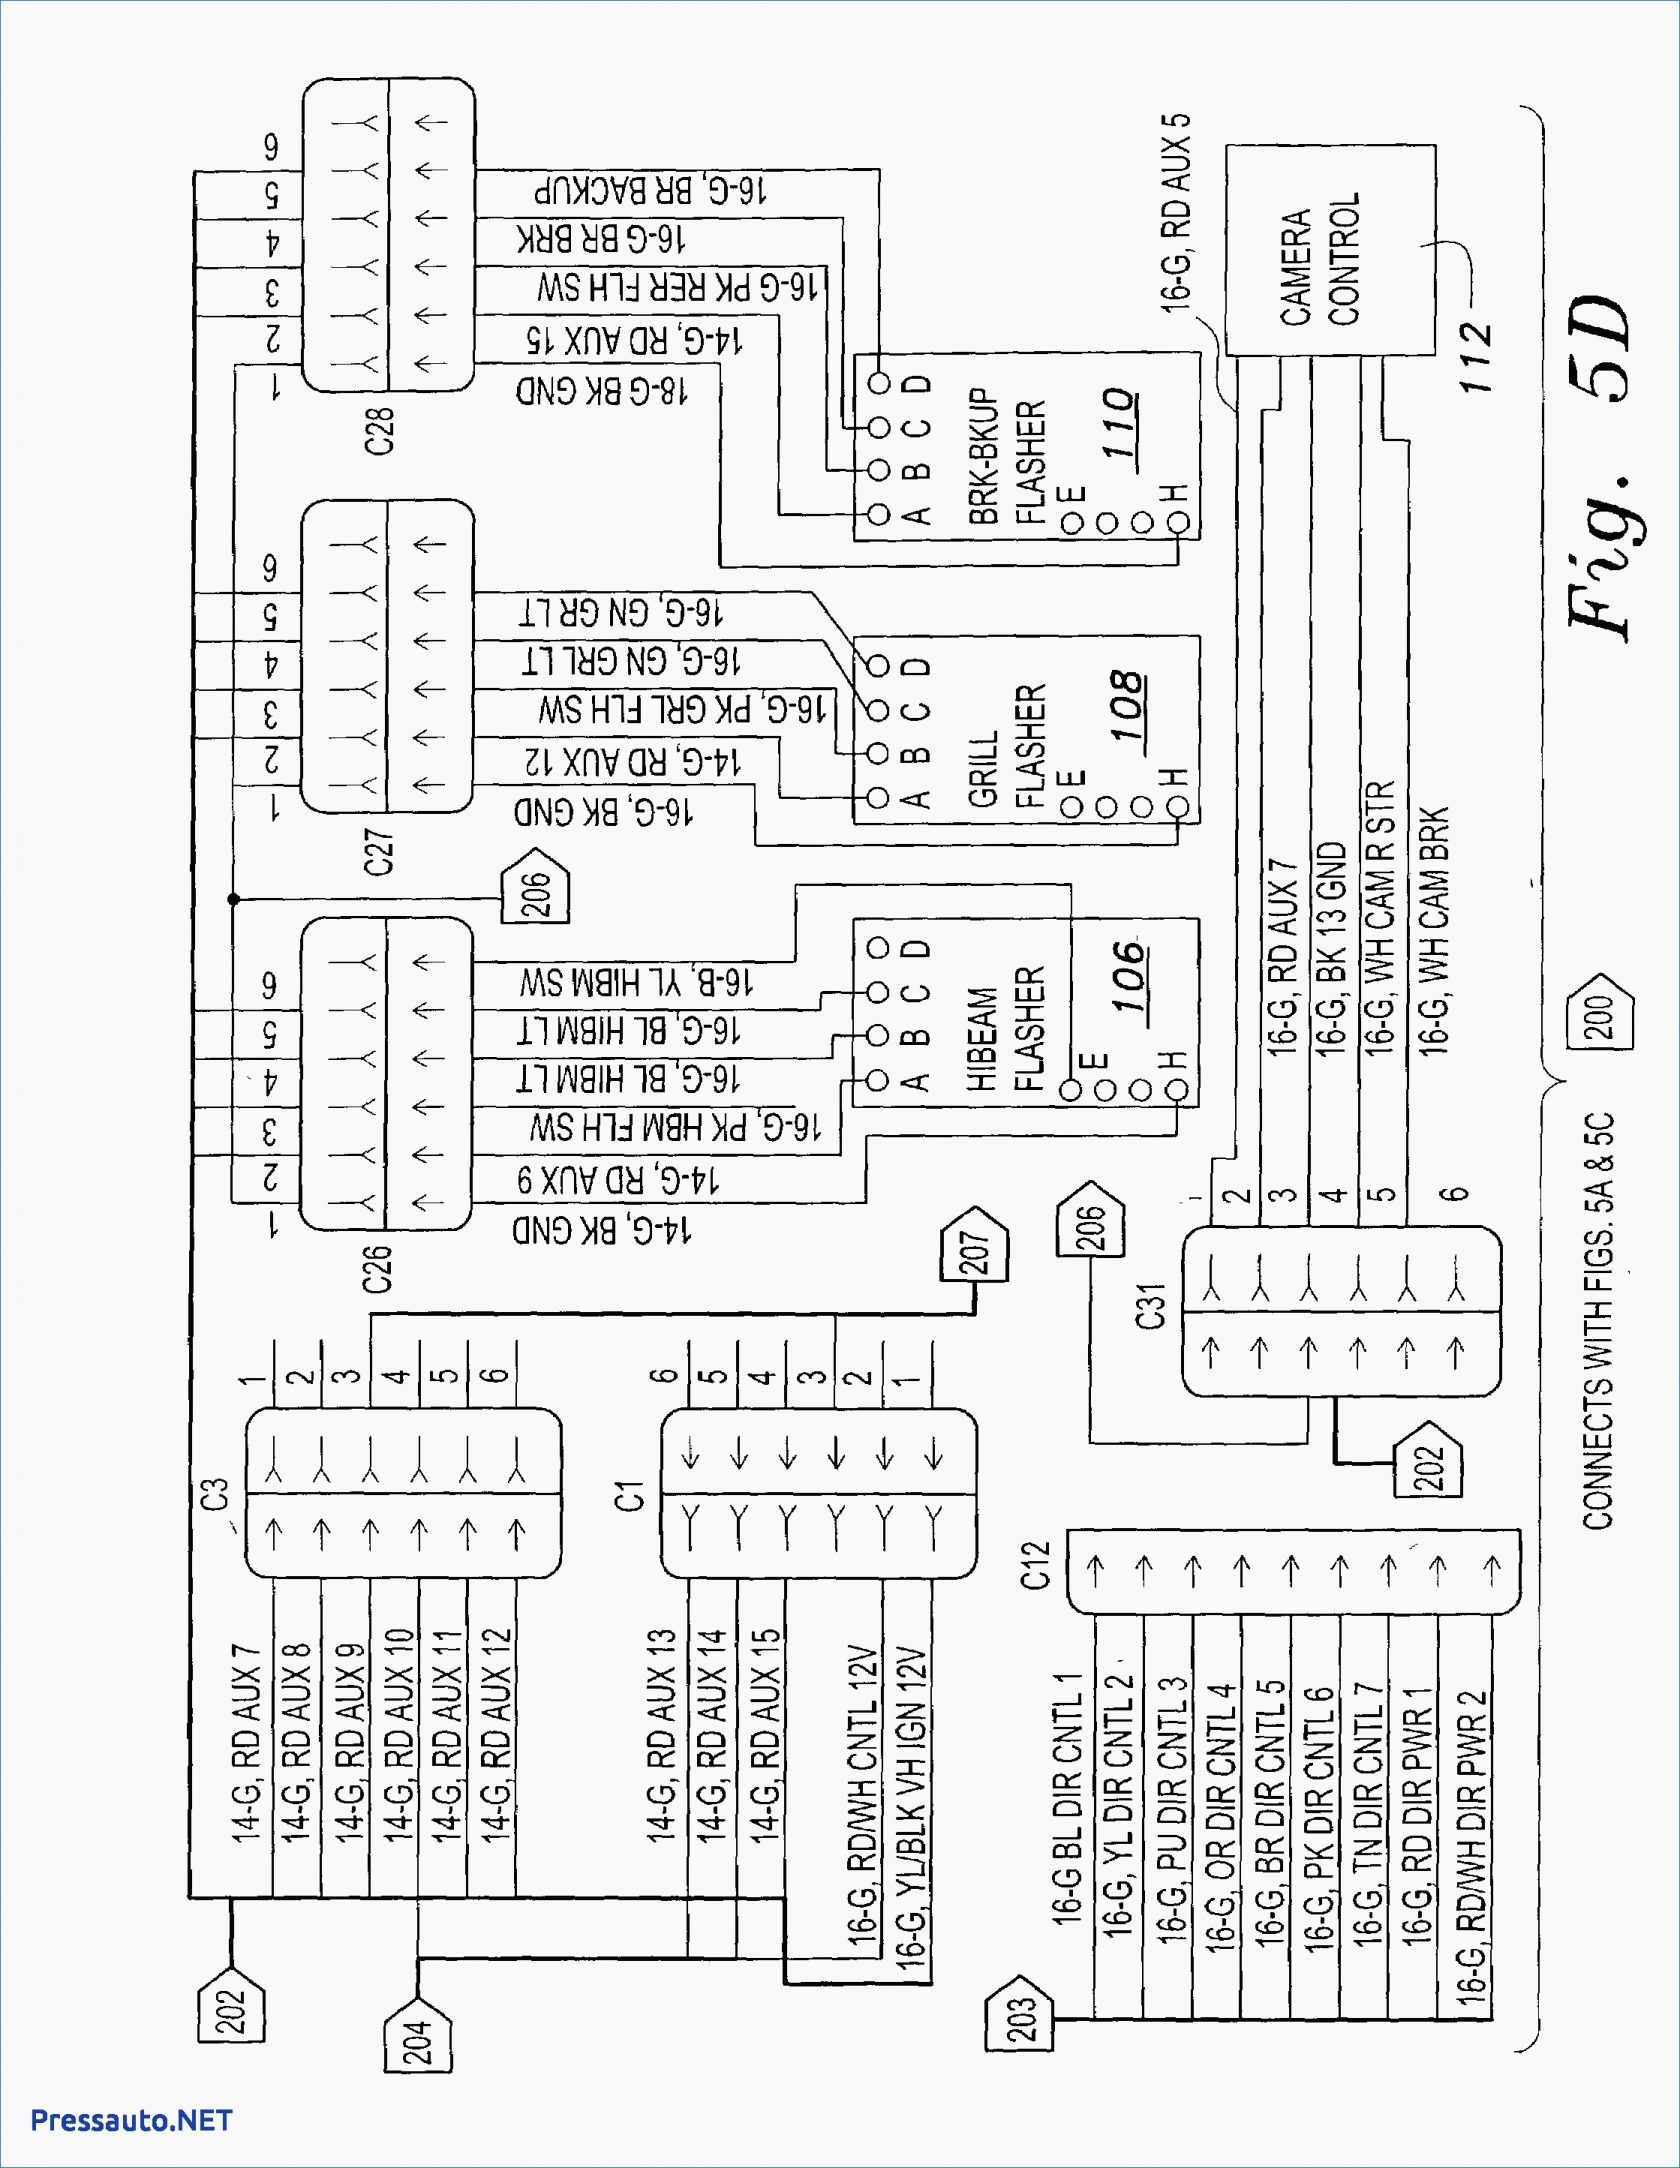 Wiring Diagram Of Pioneer Car Stereo